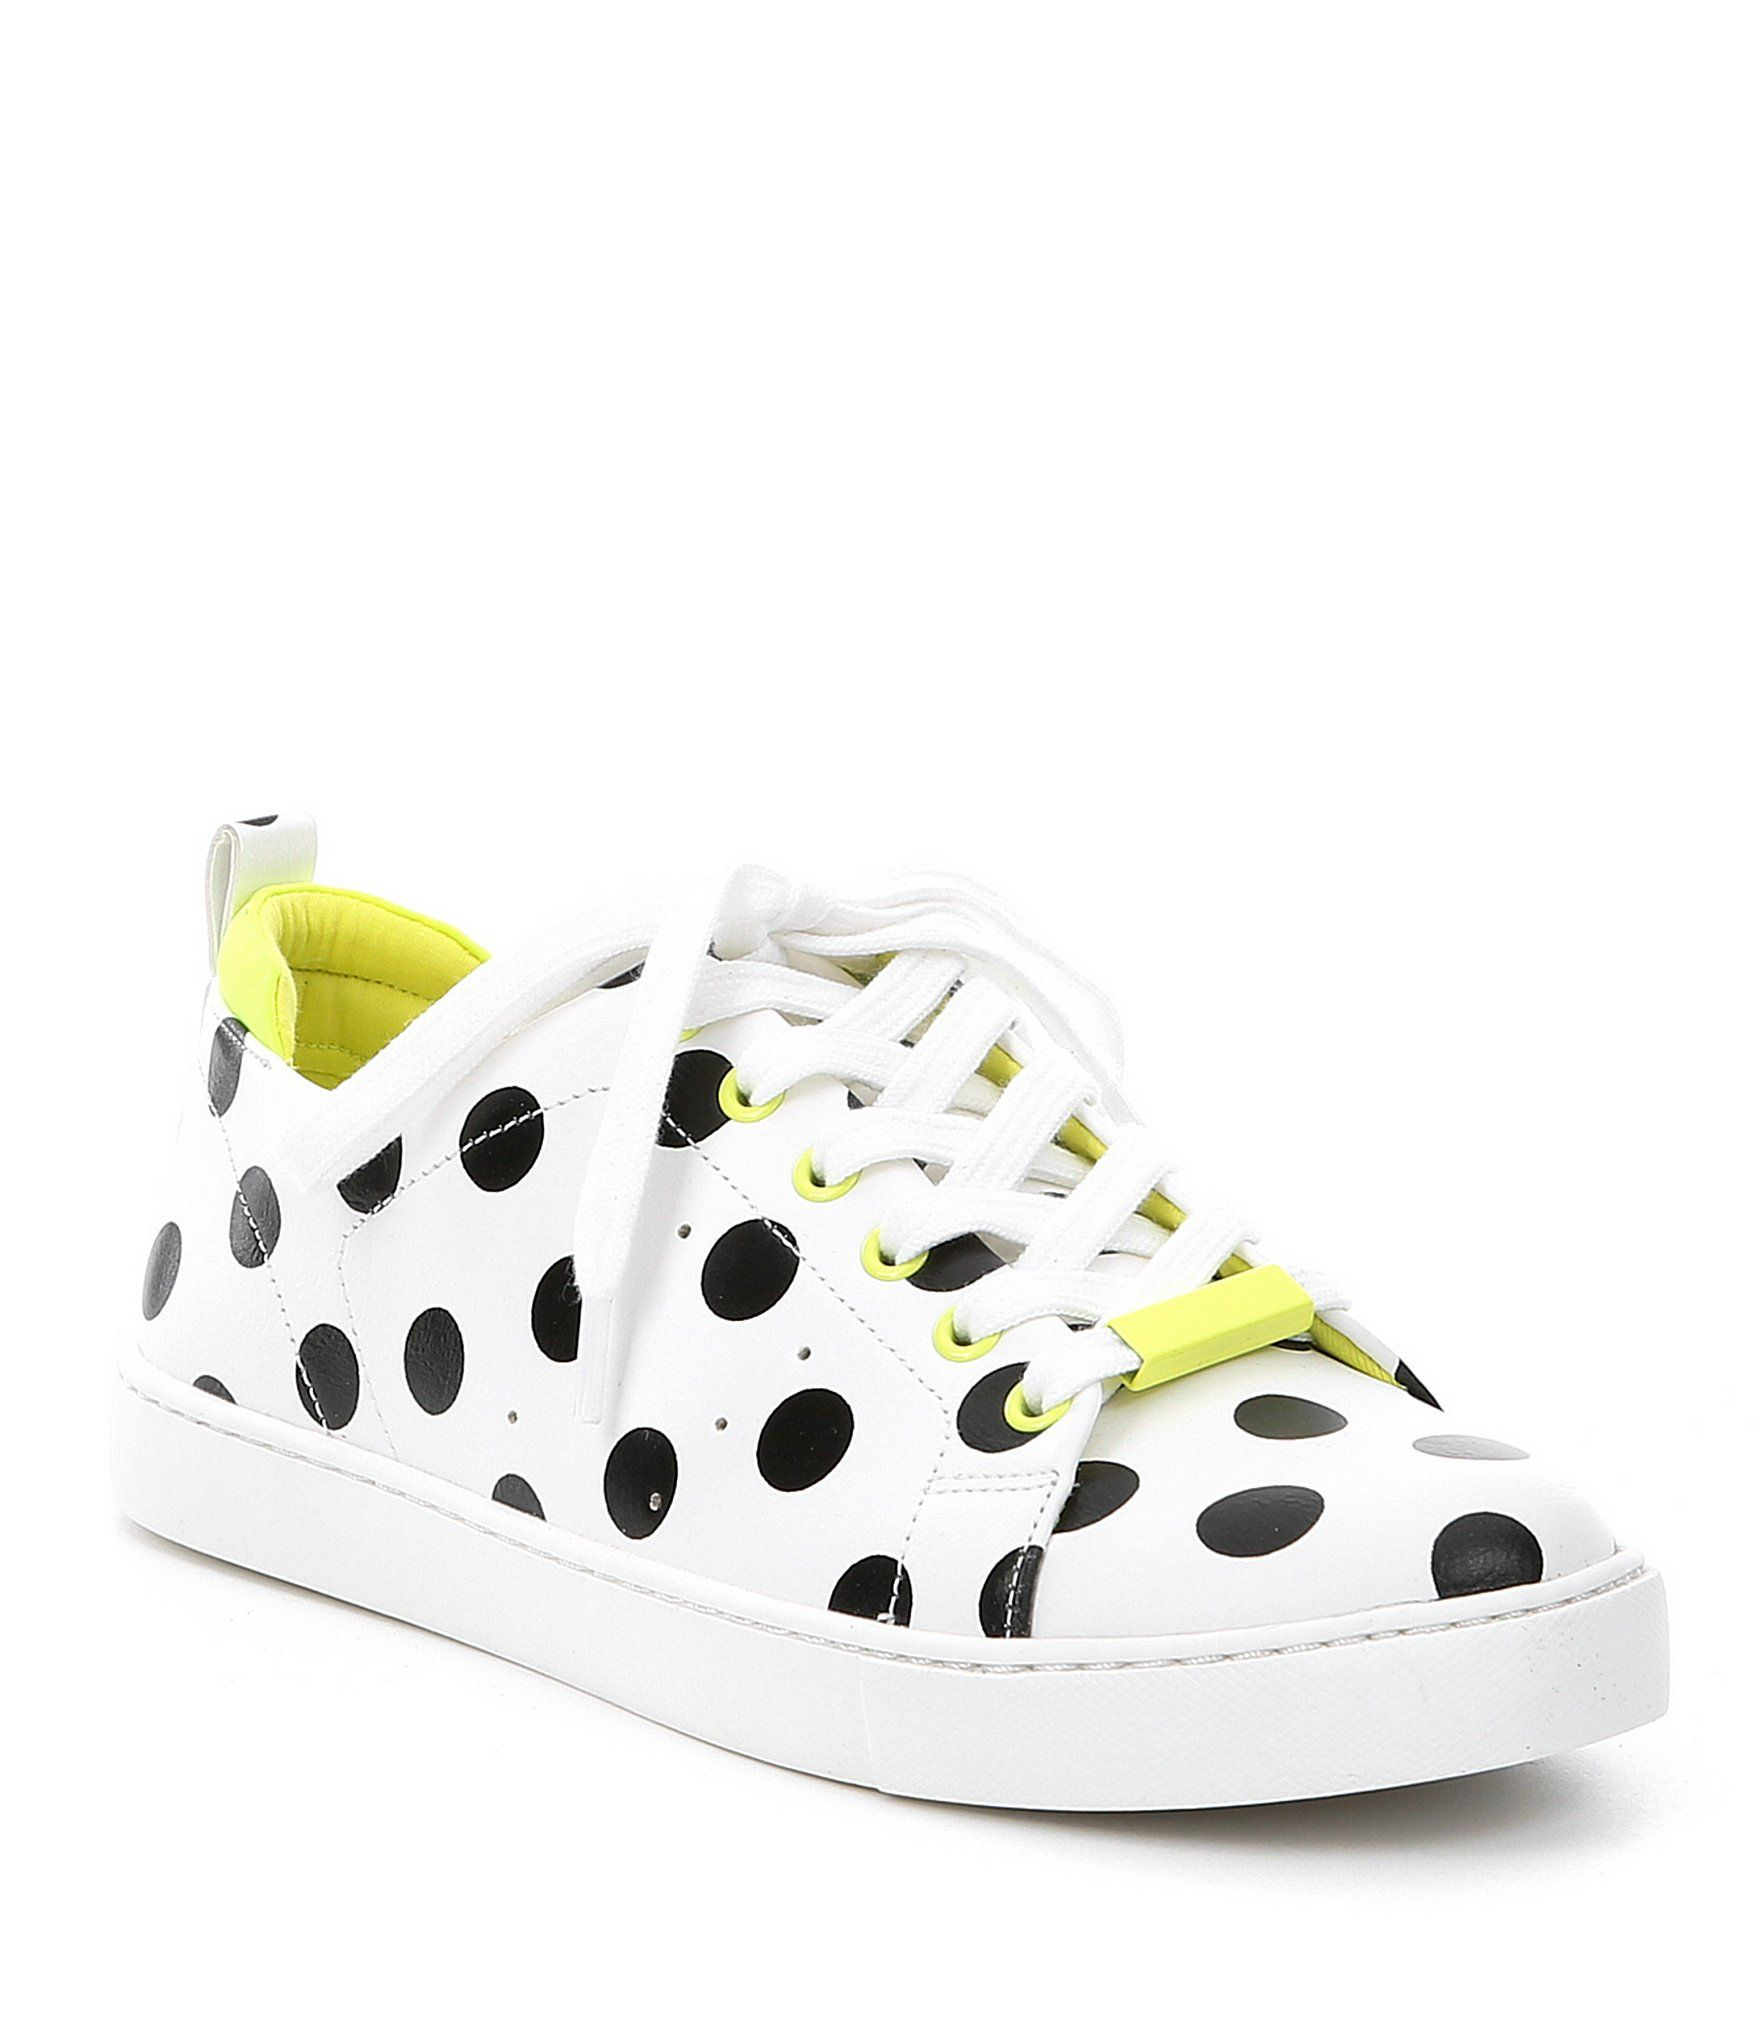 ALDO Merane Synthetic Floral Print Lace-up Sneakers bS0CmCLlQ